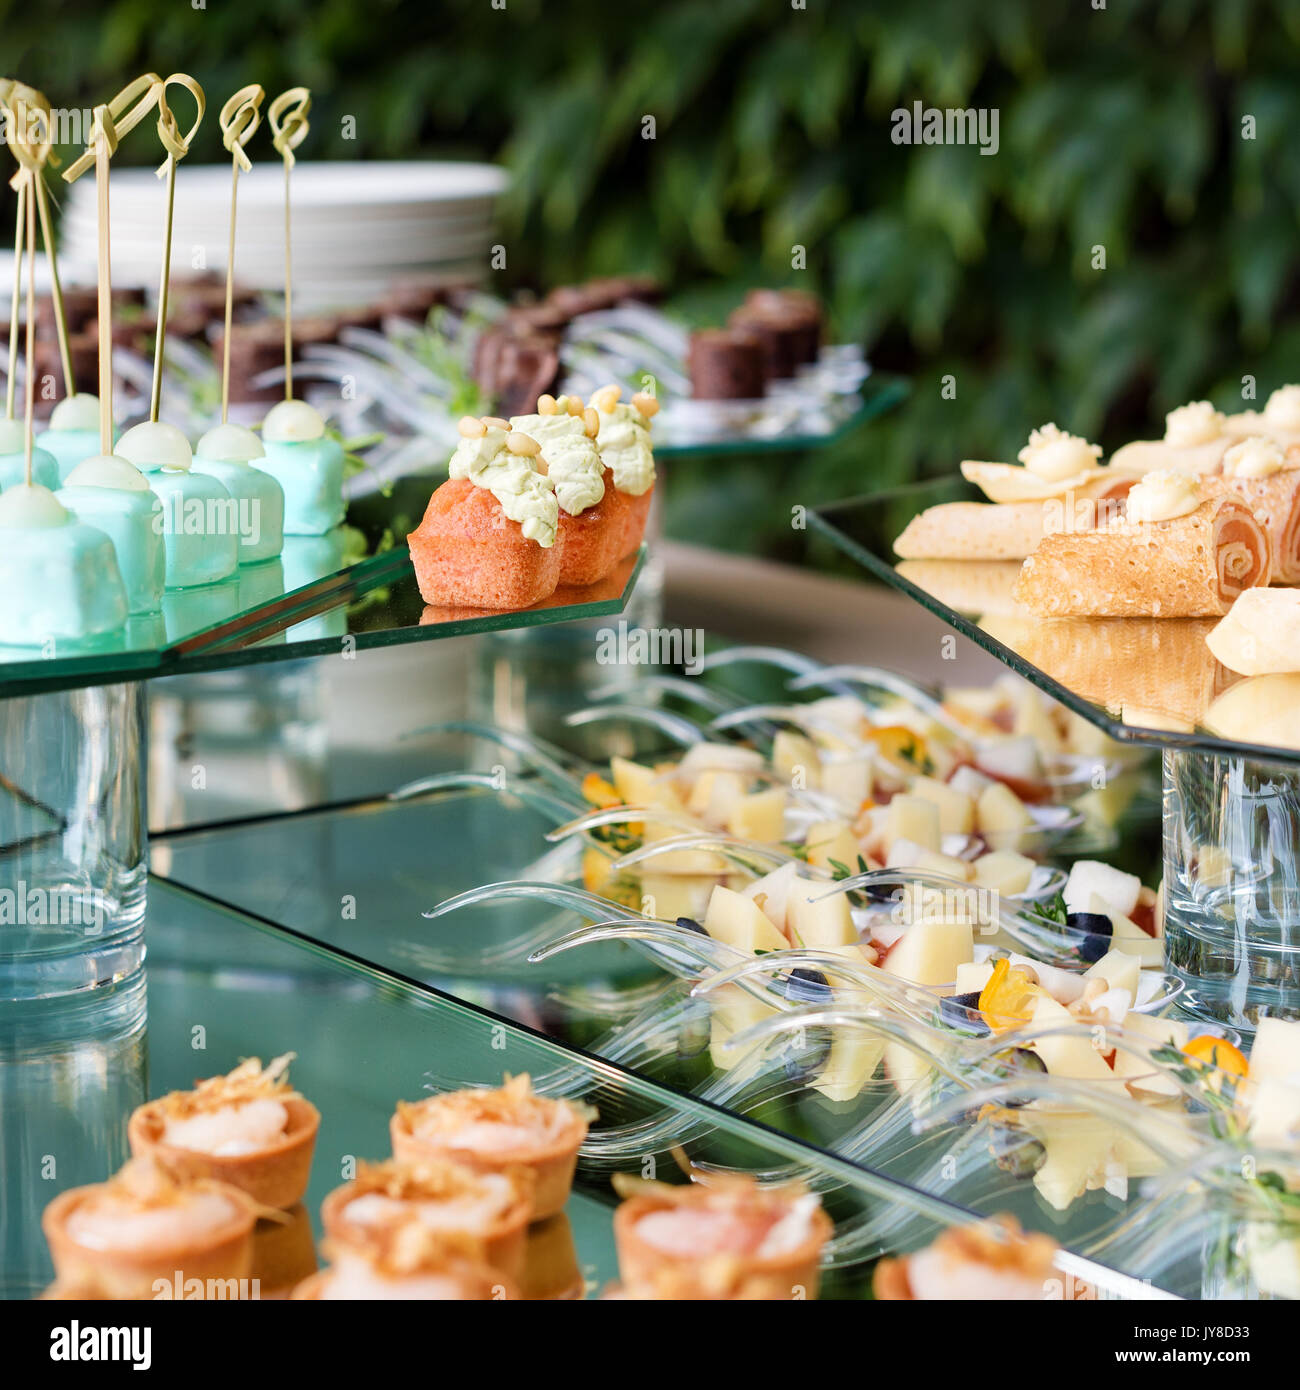 Appetizers, Finger Food, Party Food, Sliders. Canape, Tapas. Served Table  At Summer Terrace Cafe. Catering Service. Outdoor Restaurant Table With  Food.